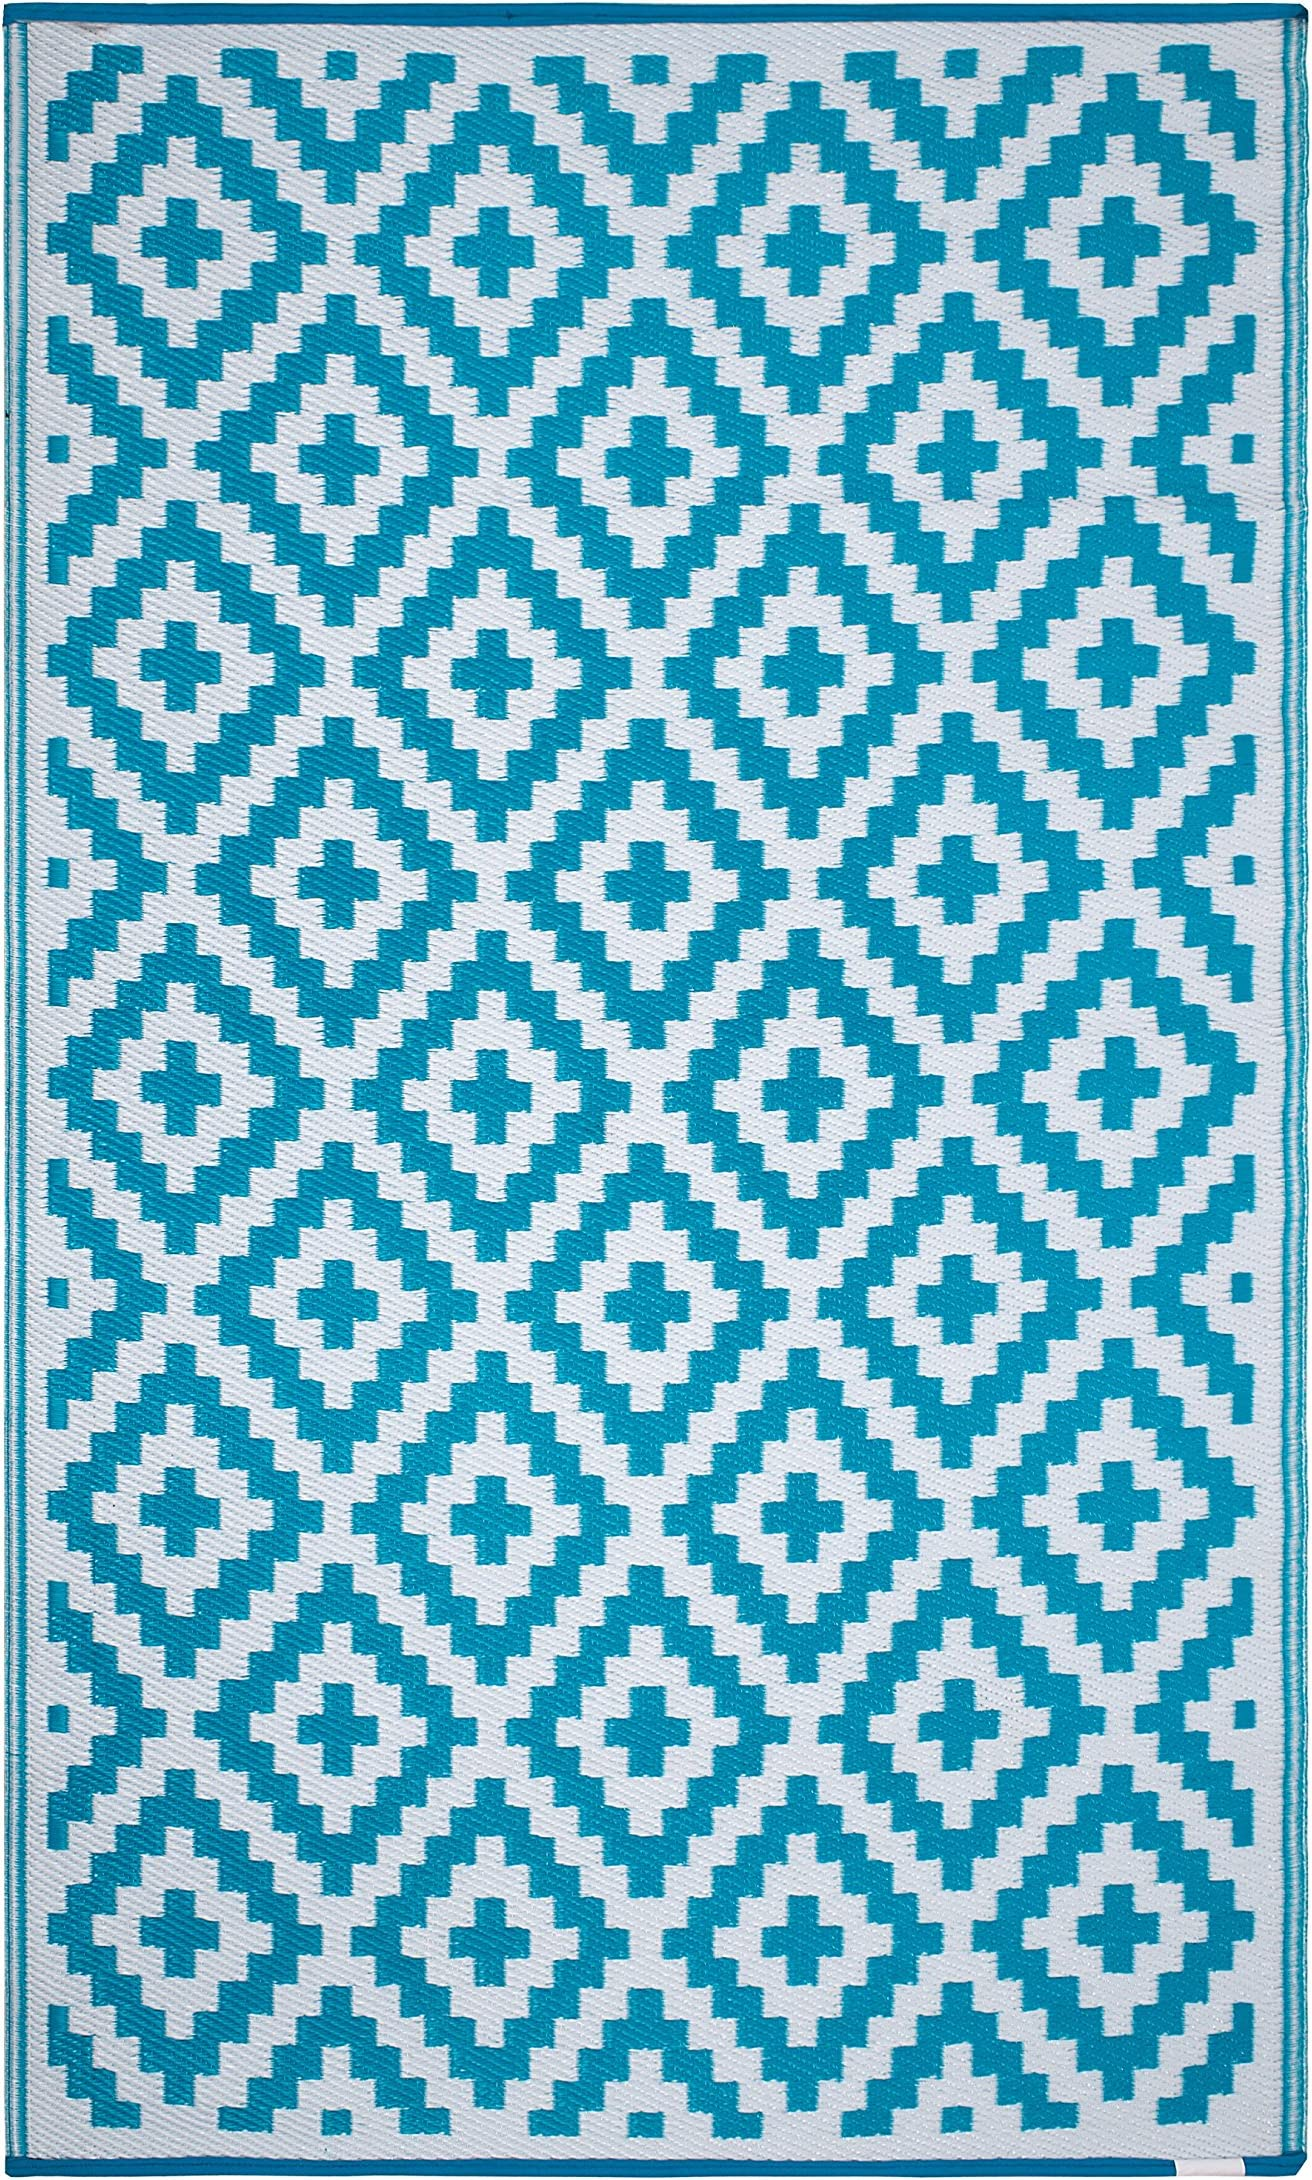 FH Home Outdoor Rug - Reversible - Indoor Use, Kids Room, Mudroom - Stain Resistant, Easy to Clean Weather Resistant Floor Mats - Aztec - Teal and White (6 ft x 9 ft)